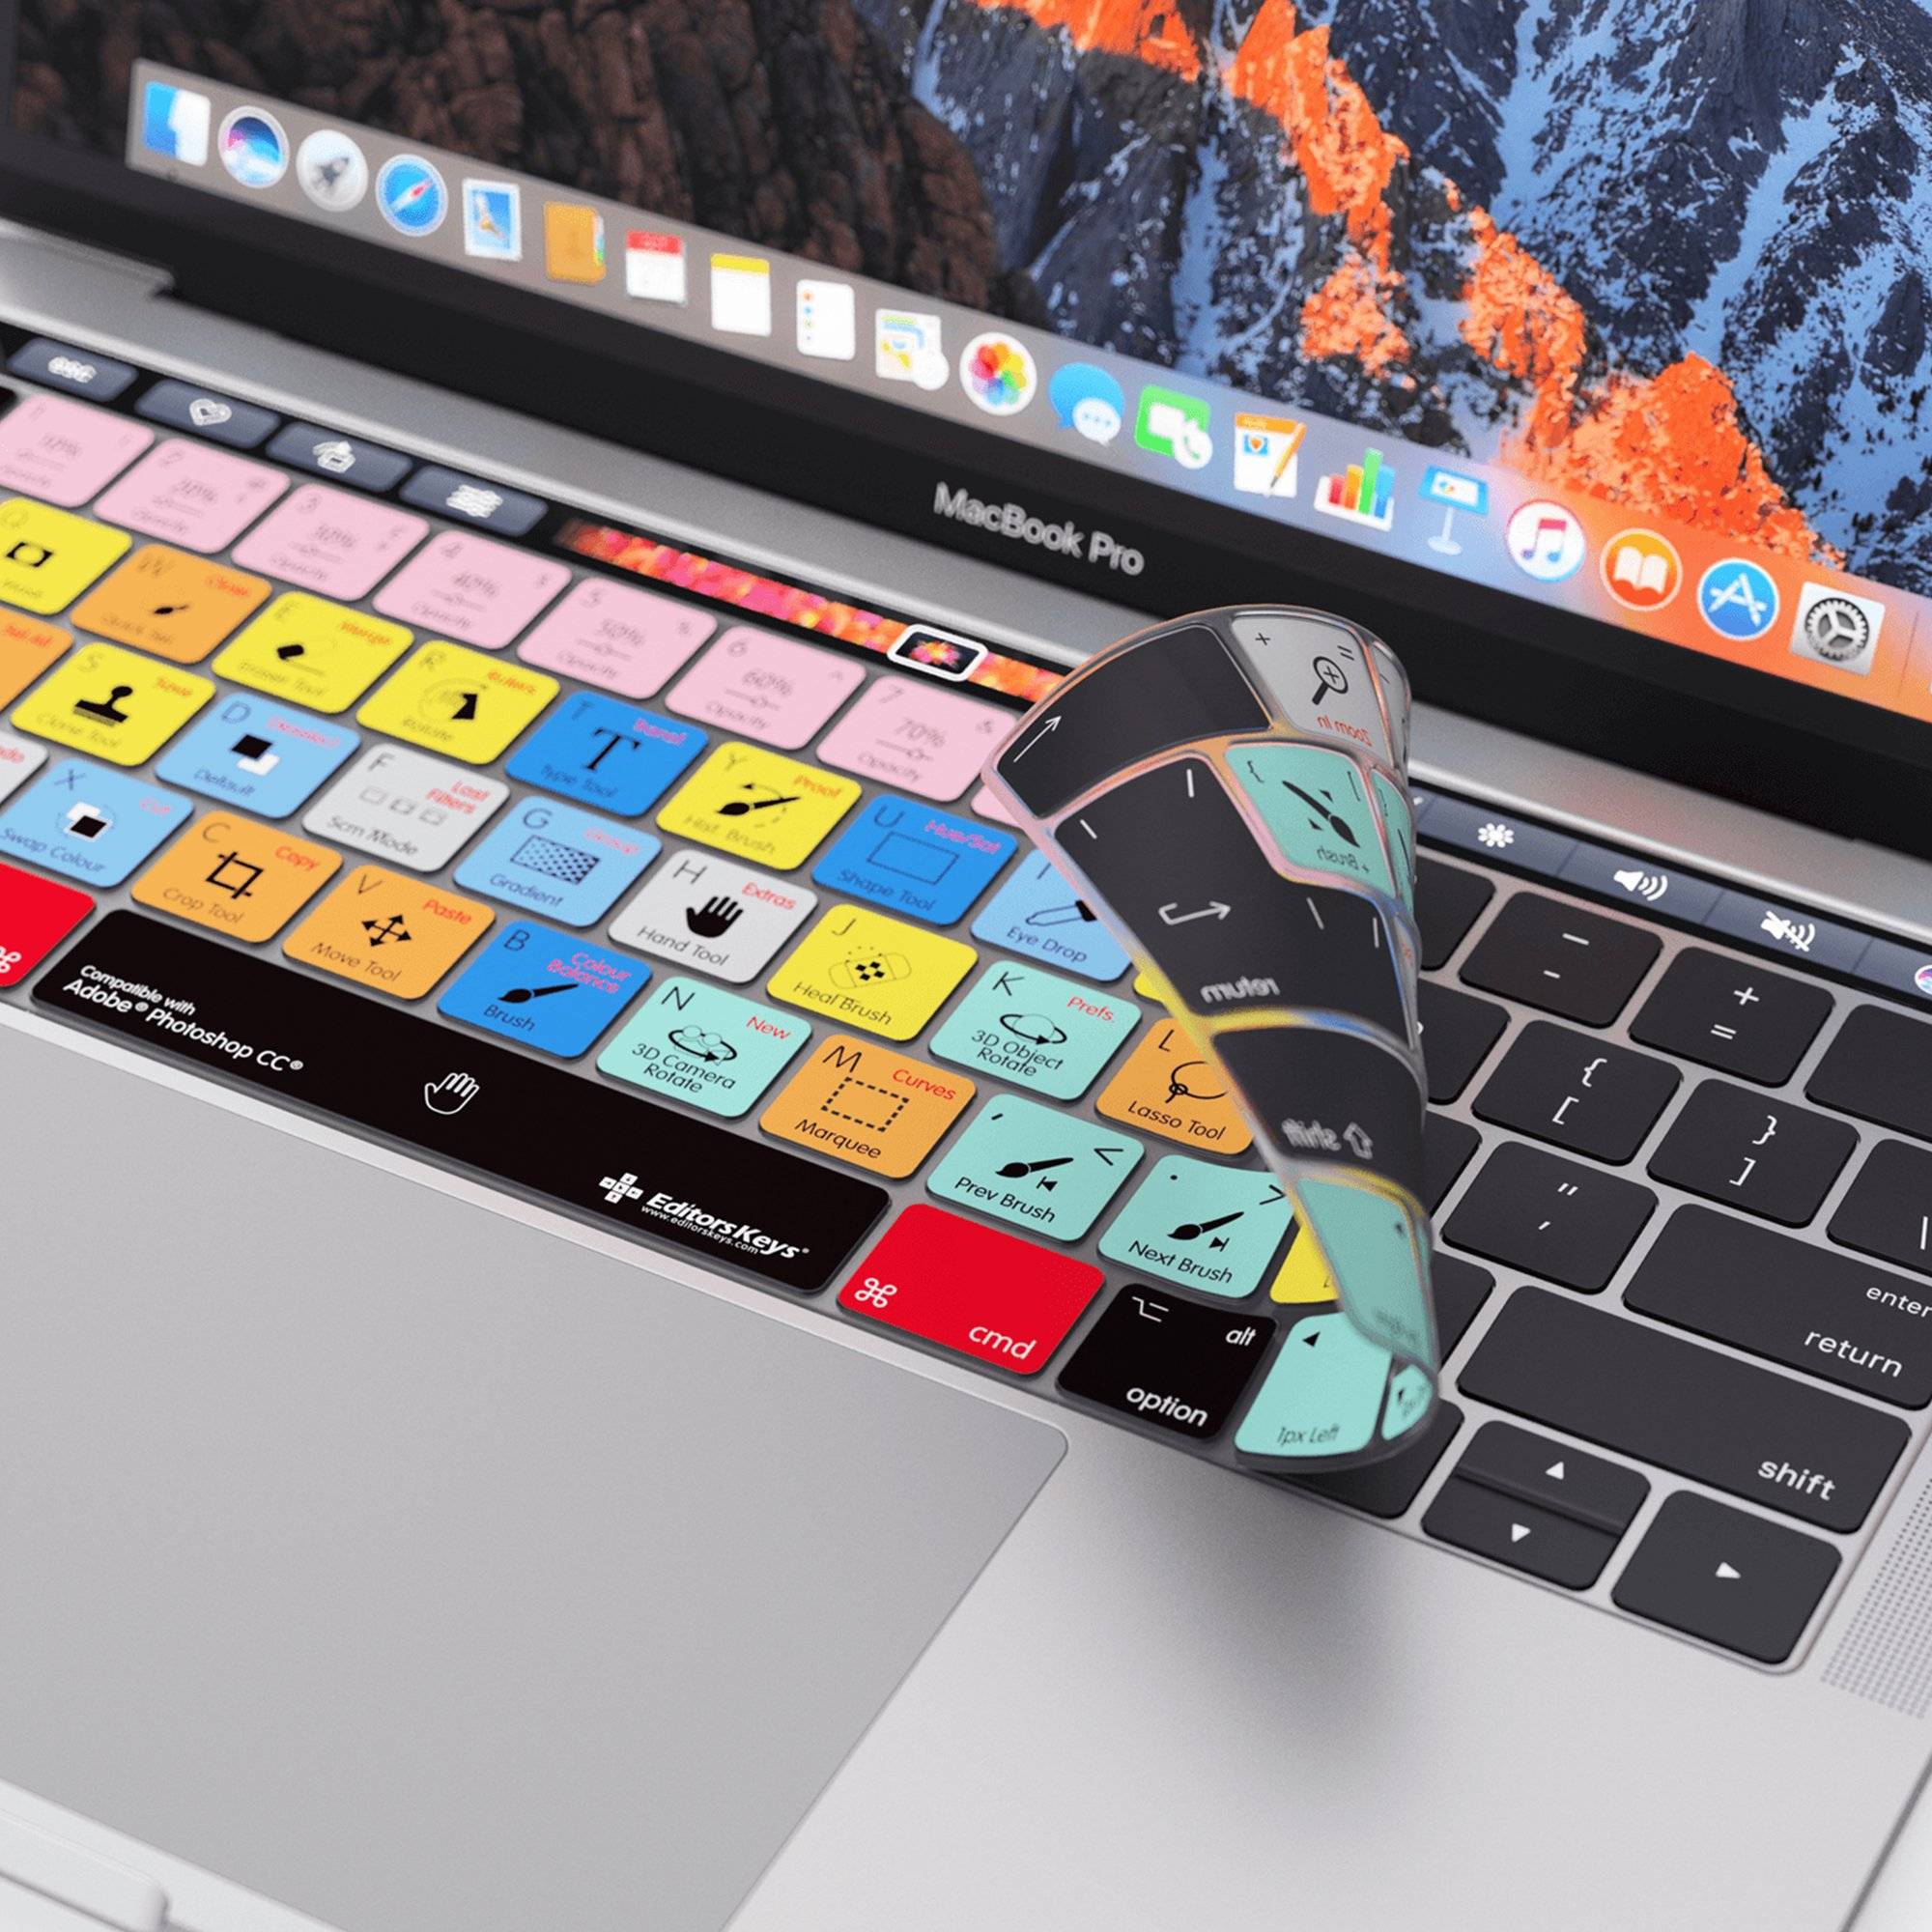 Adobe Photoshop Keyboard Cover for MacBook Pro Touch Bar - Protection and Shortcut Skin. 13'' | 15'' by Editors Keys, Adobe (Image #5)